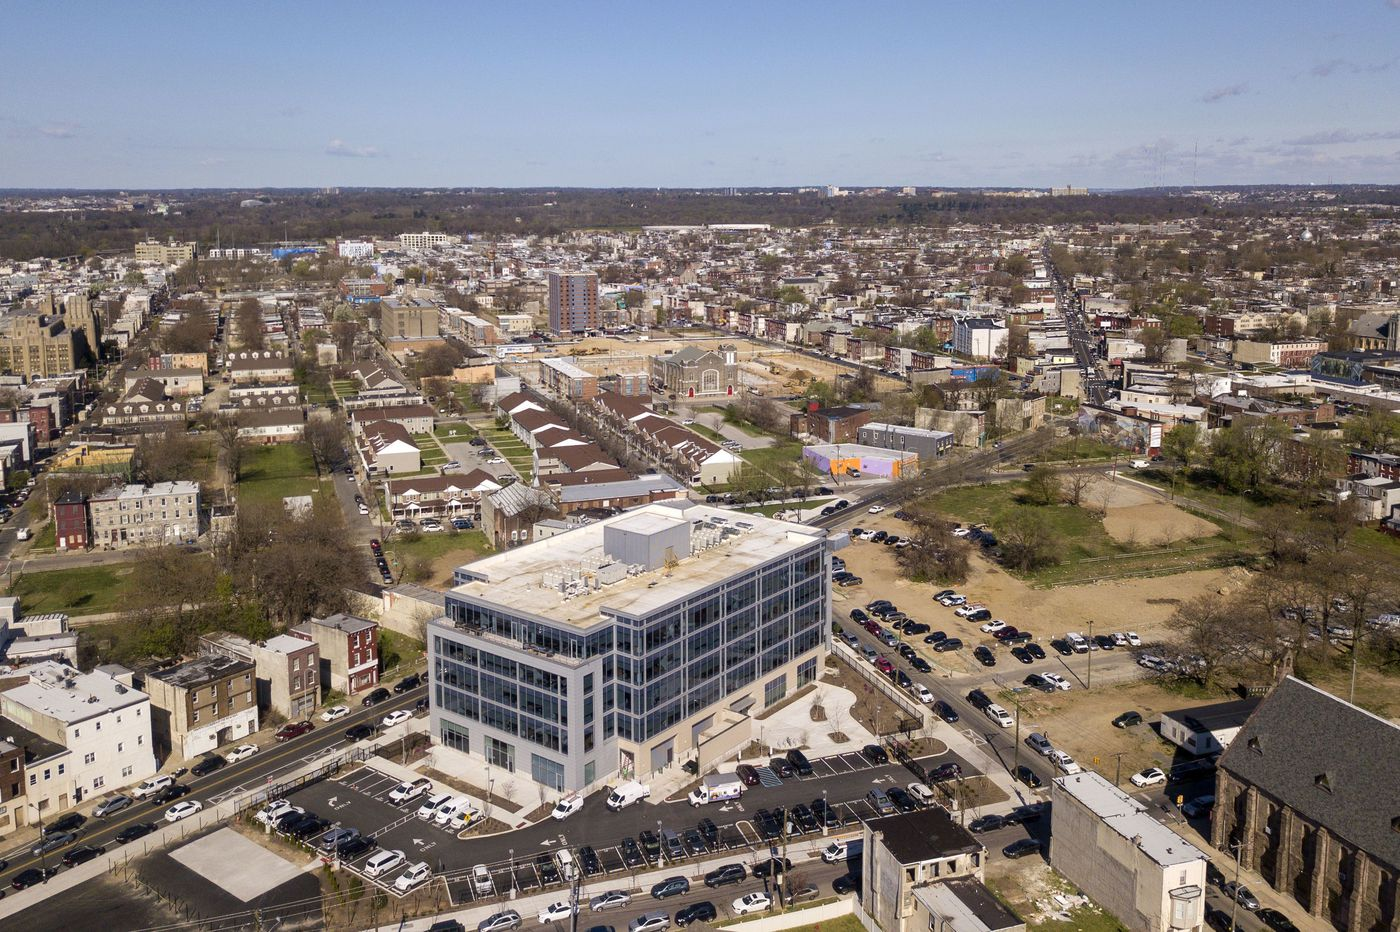 Fed government grants Philly $30M for affordable housing at former Blumberg tower site